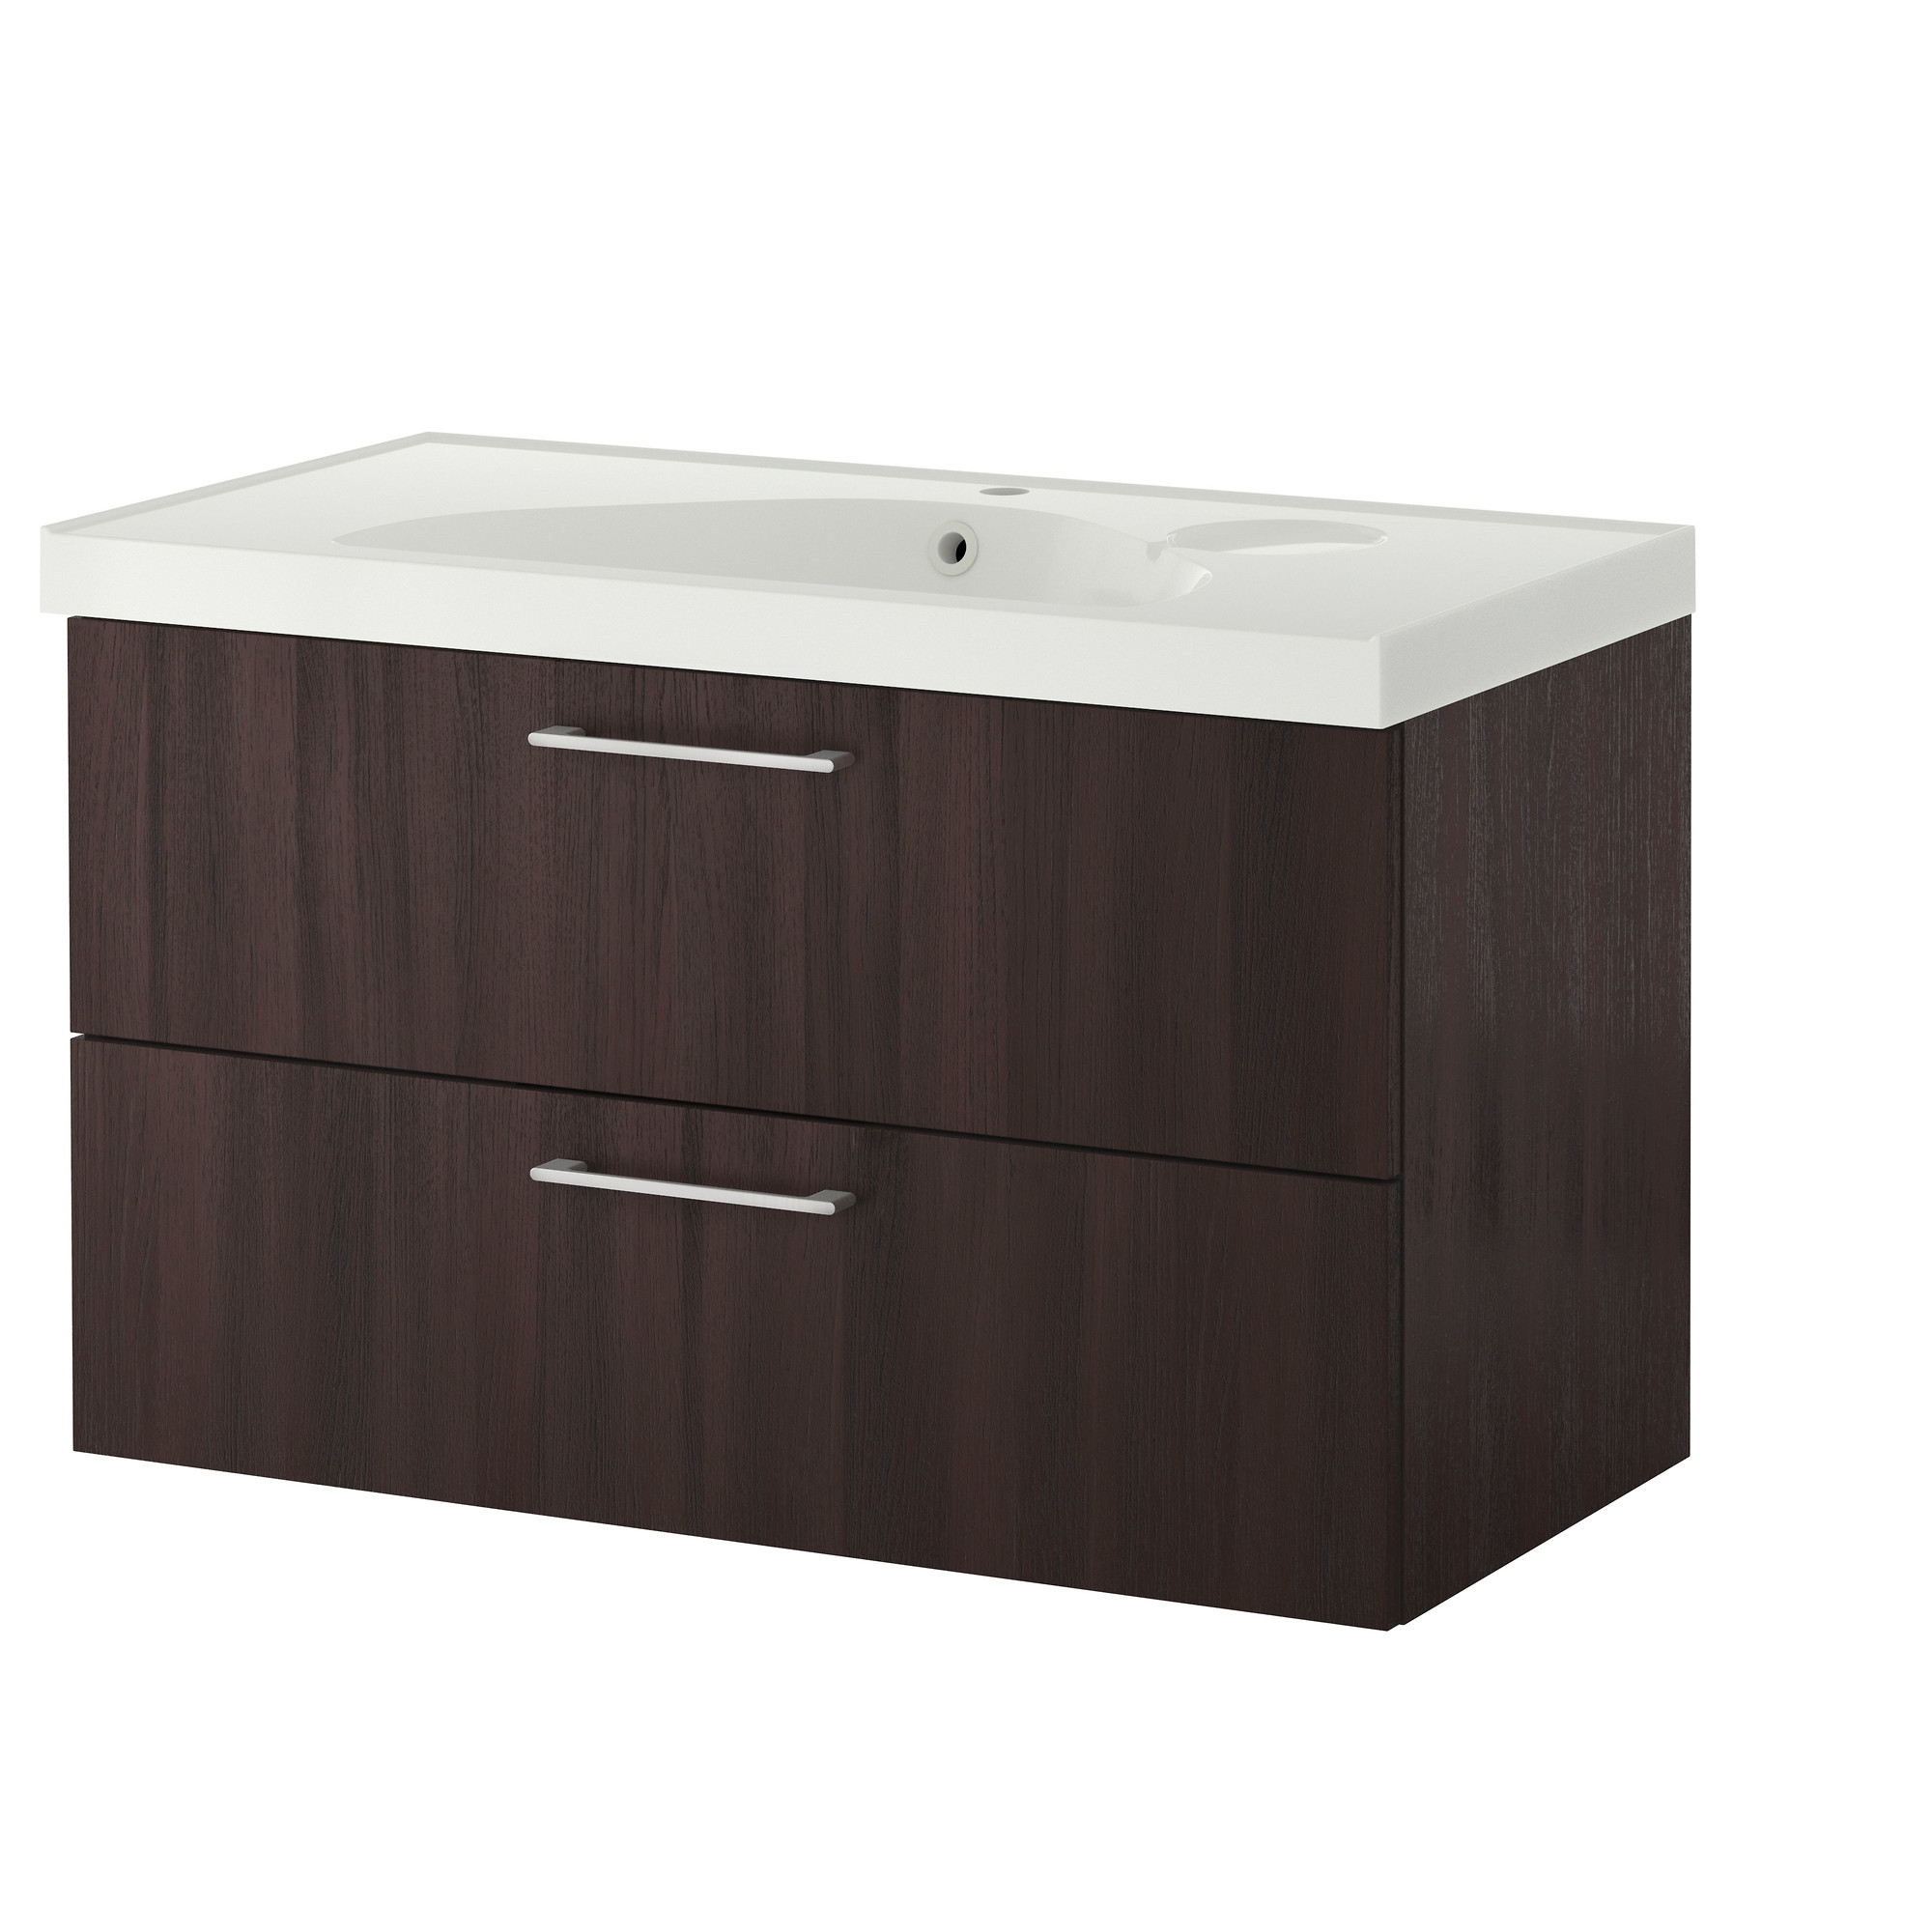 Muebles peque os for Armario lavabo ikea